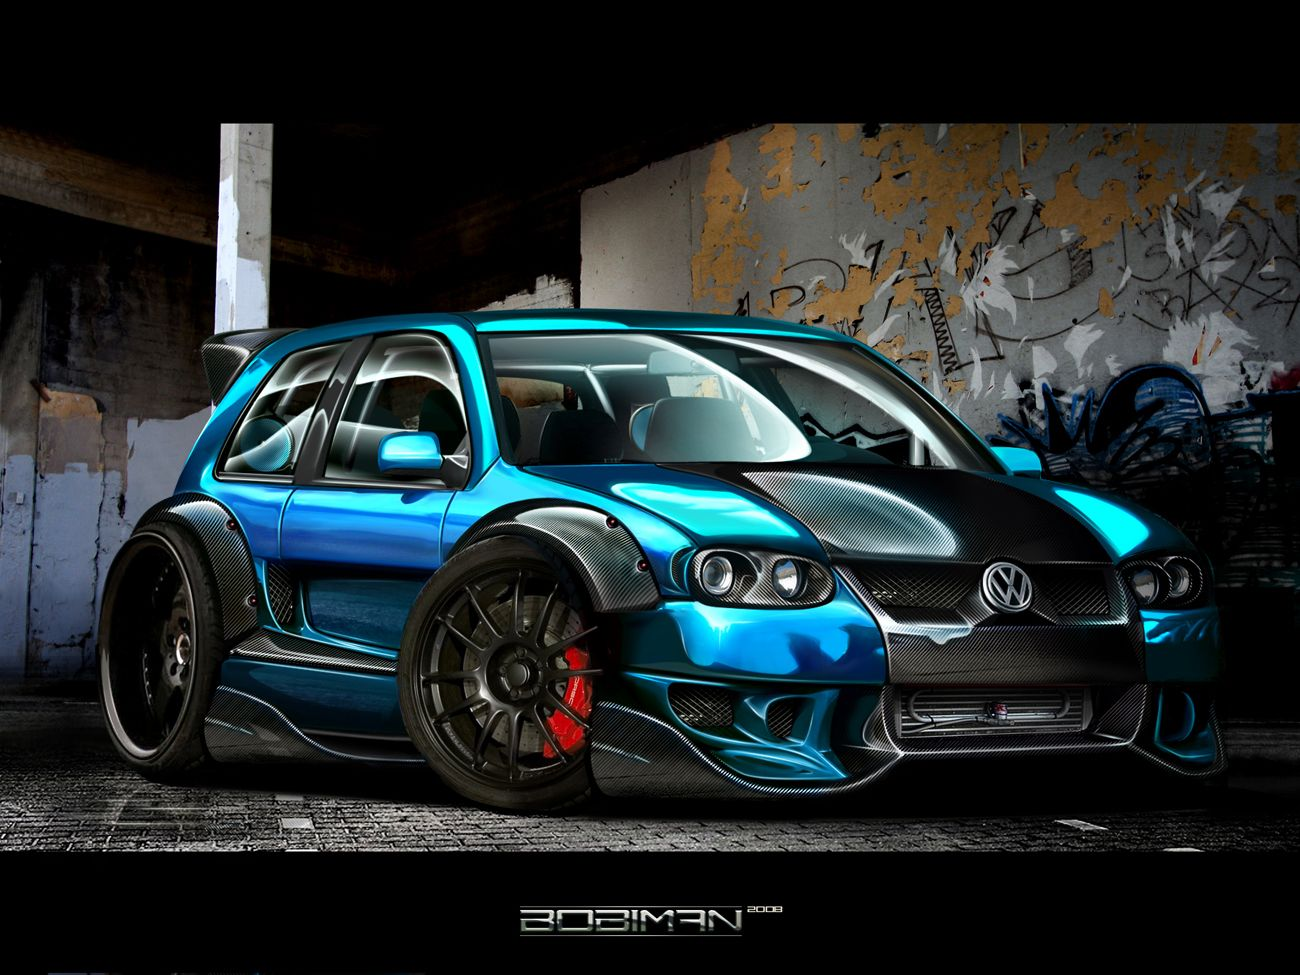 54 best car wallpaper images on pinterest | car wallpapers, dream